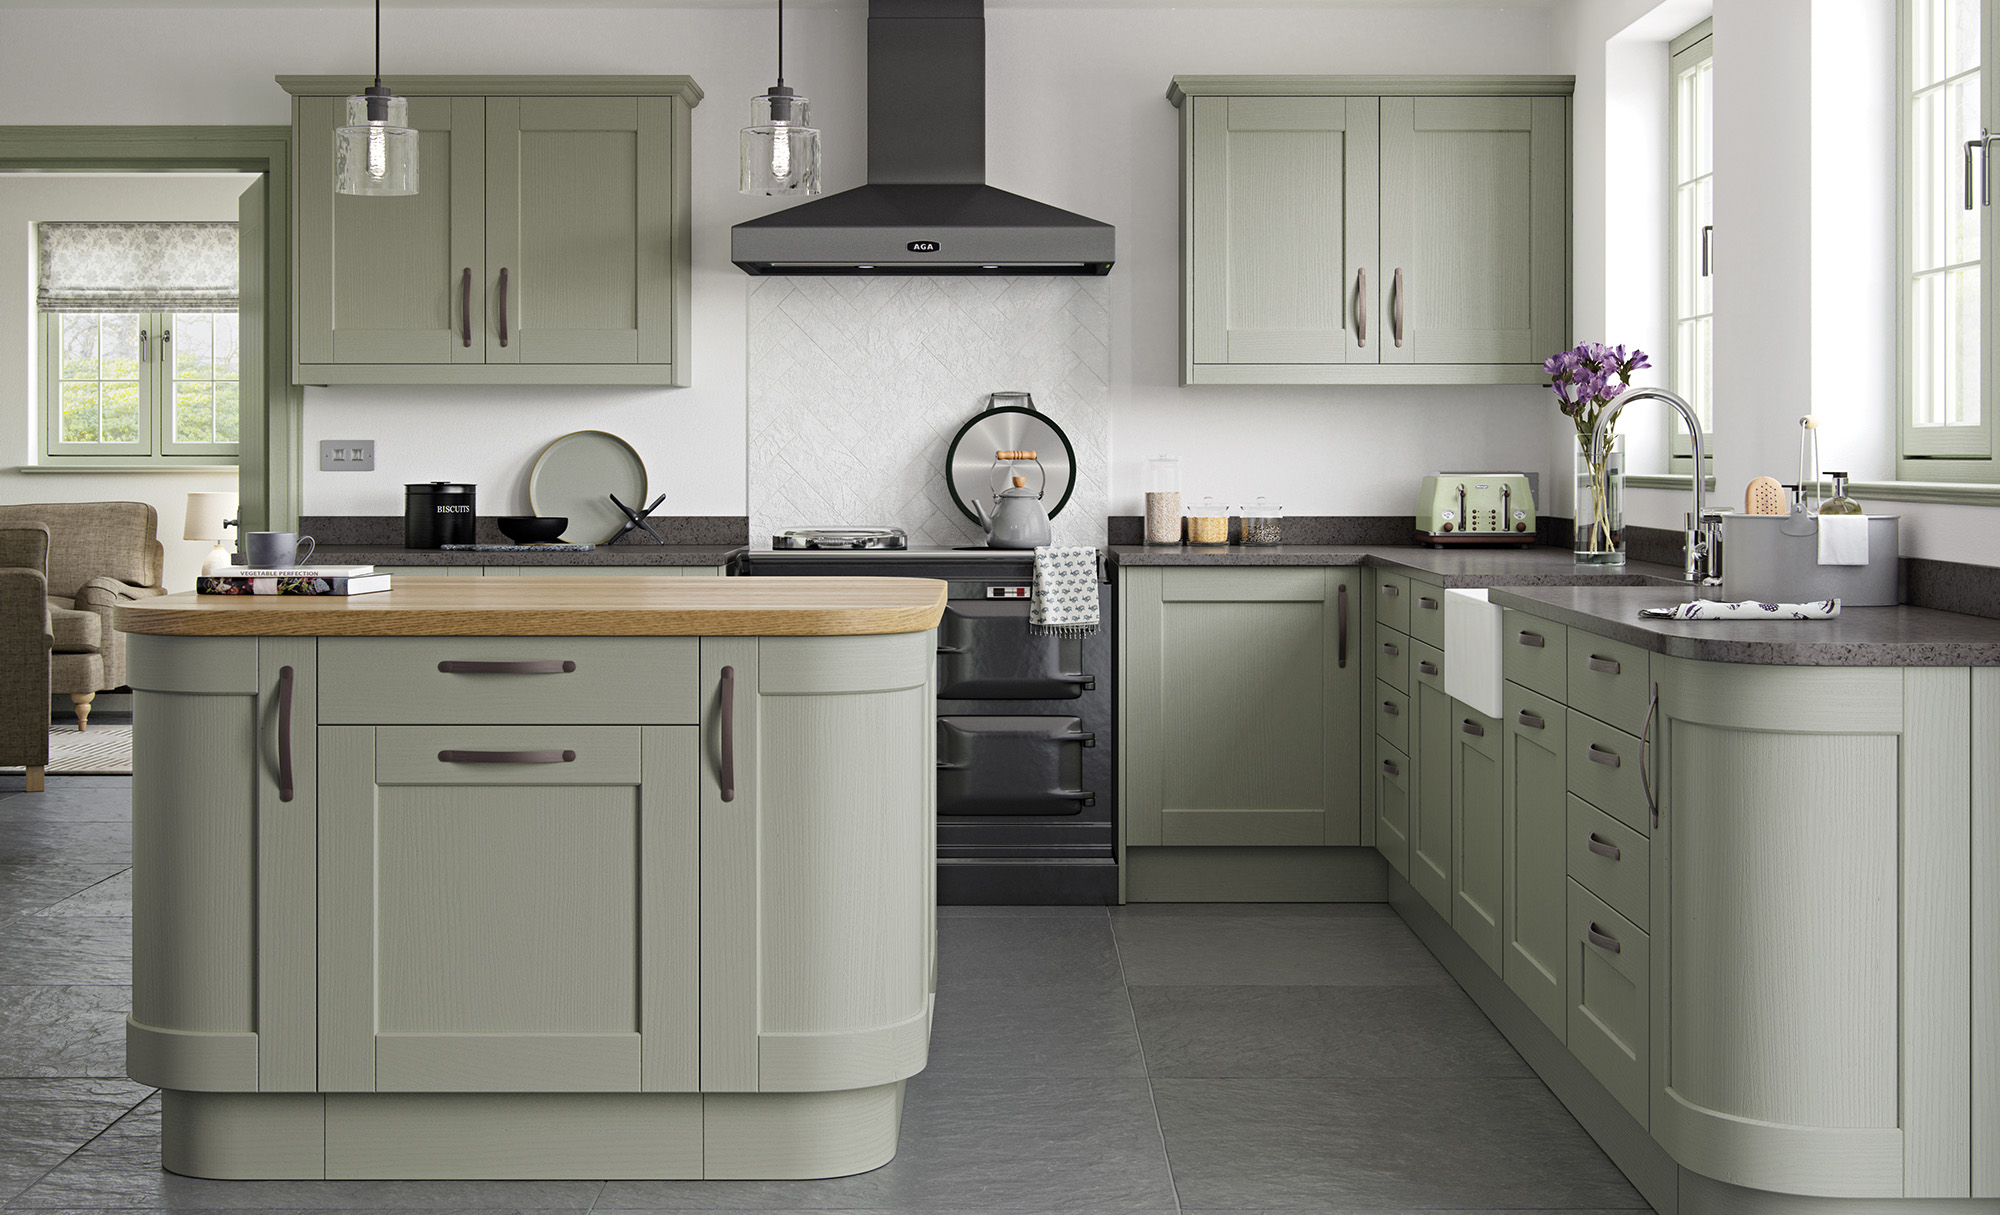 shaker style kitchen tile flooring for kensington classic sage green stori in painted